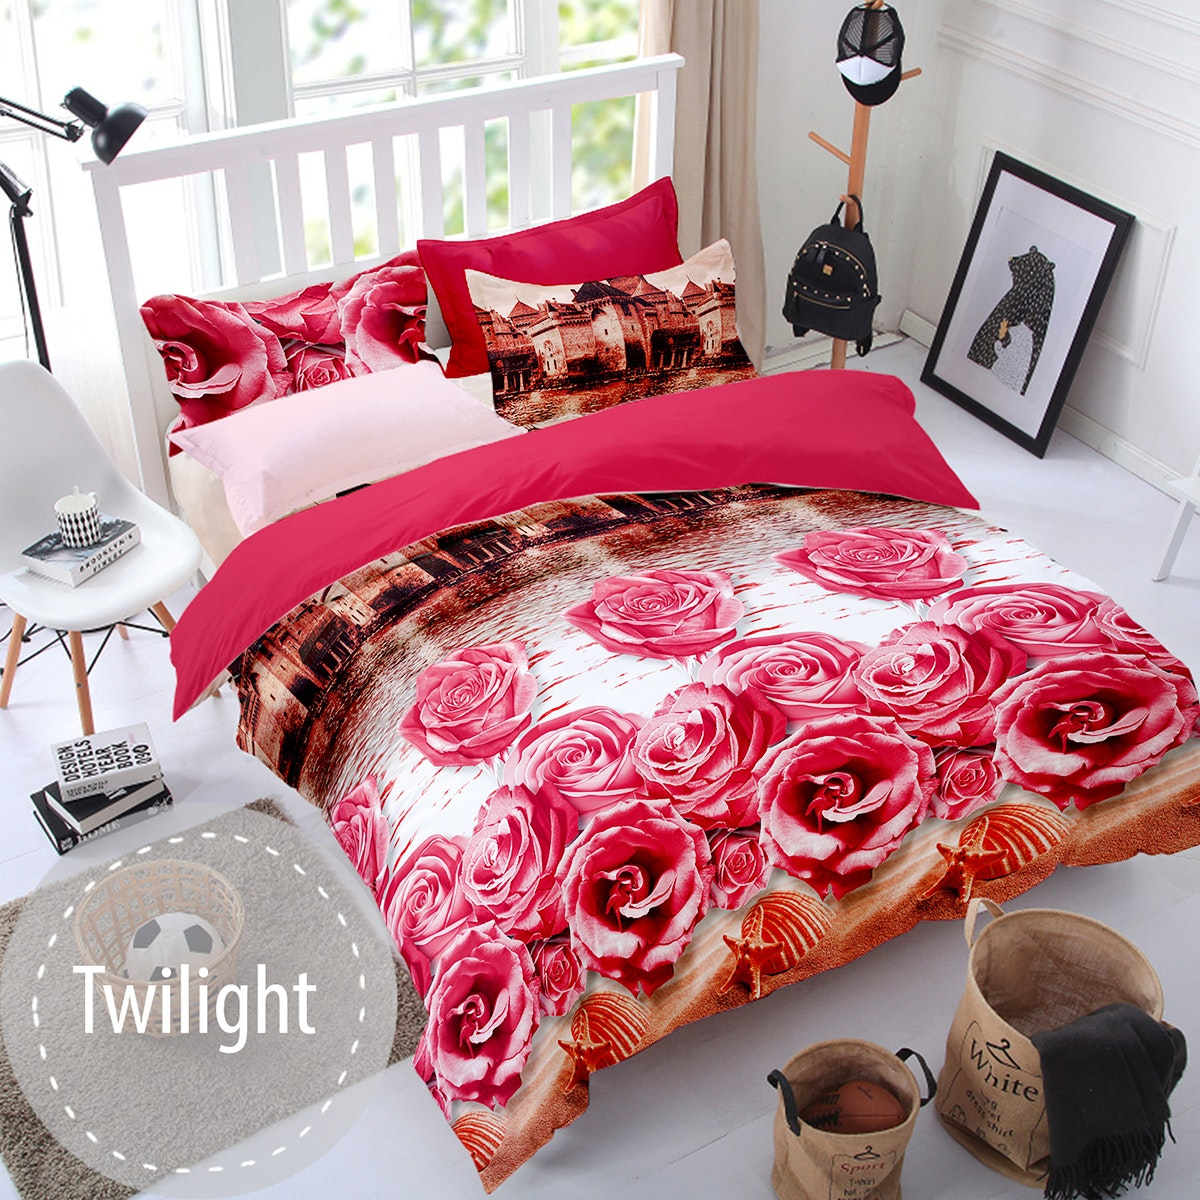 Pesona Sprei Disperse Twilight uk 160 T 20